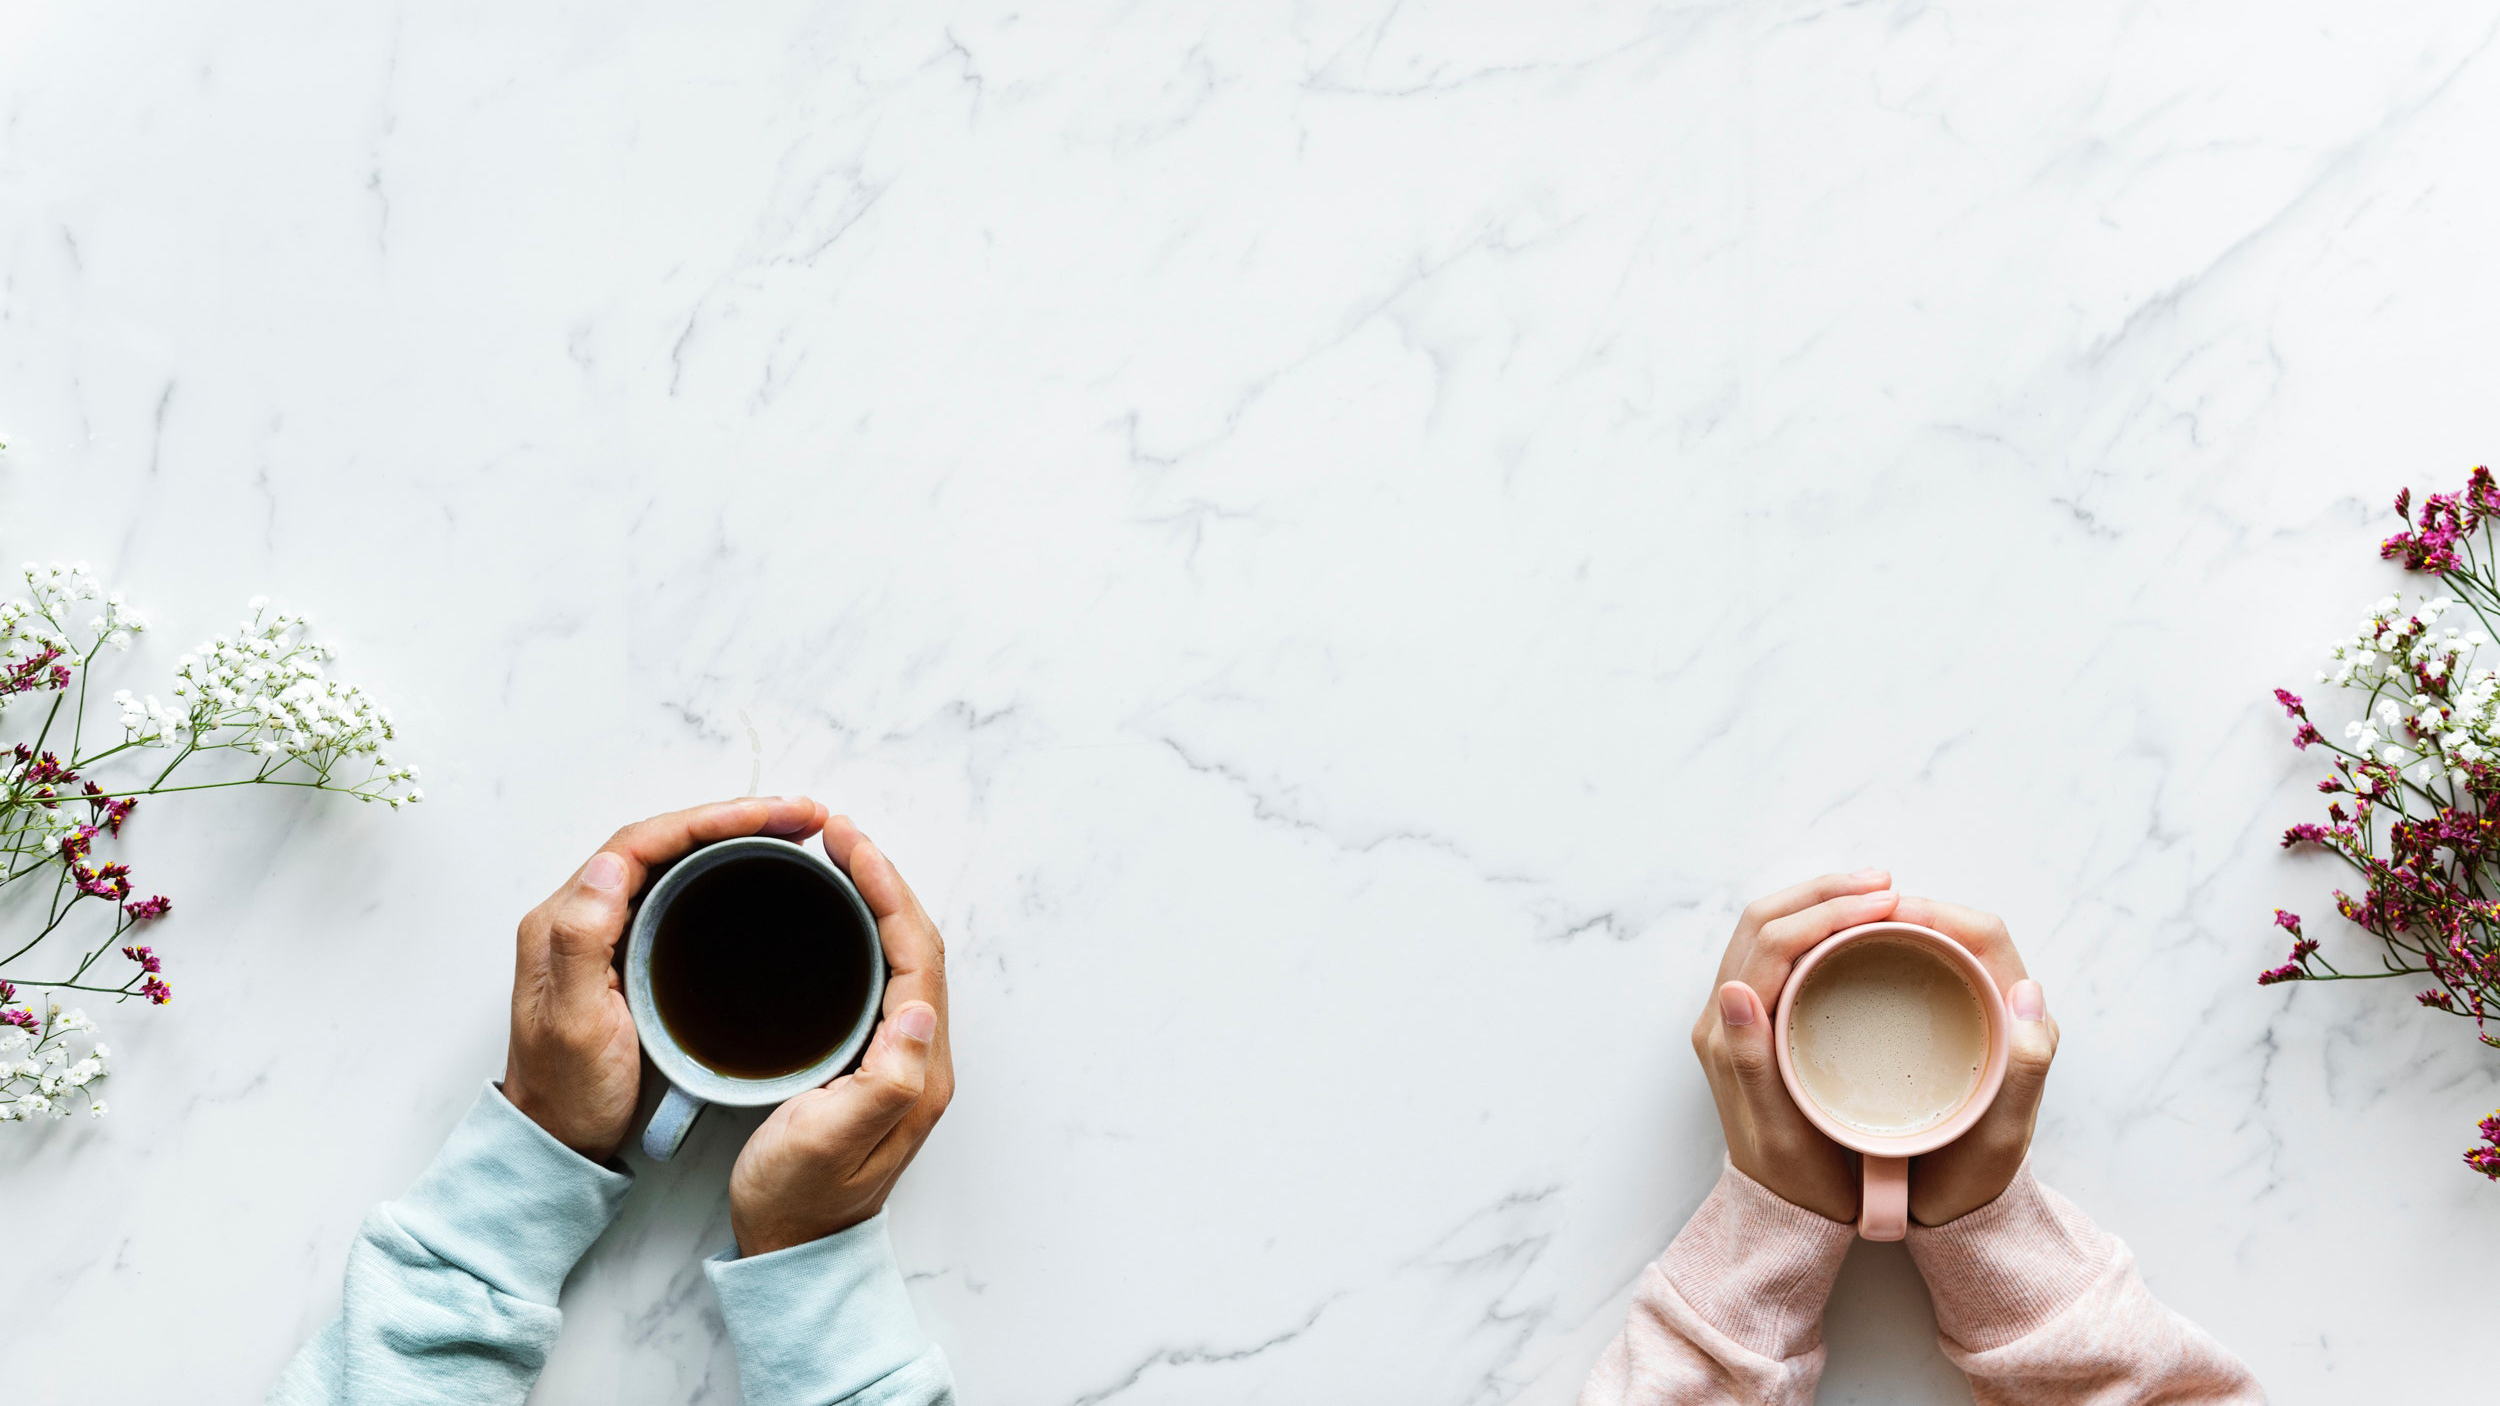 Image taken directly above of two people's hands, one man and one woman, holding their coffees over a white marble counter.